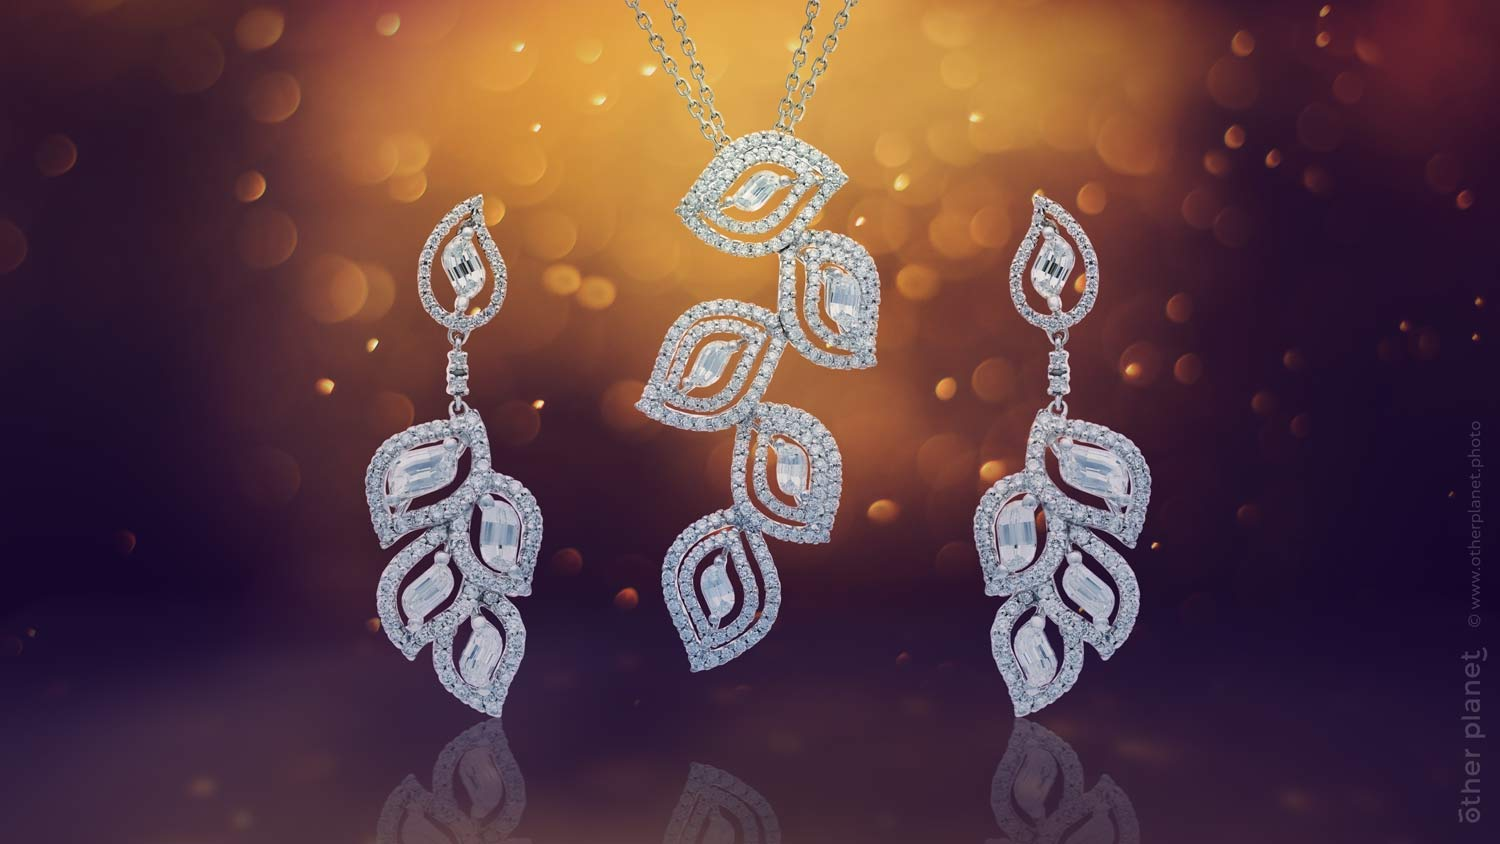 Jewelry set with flame cut diamonds by Lady Hearts